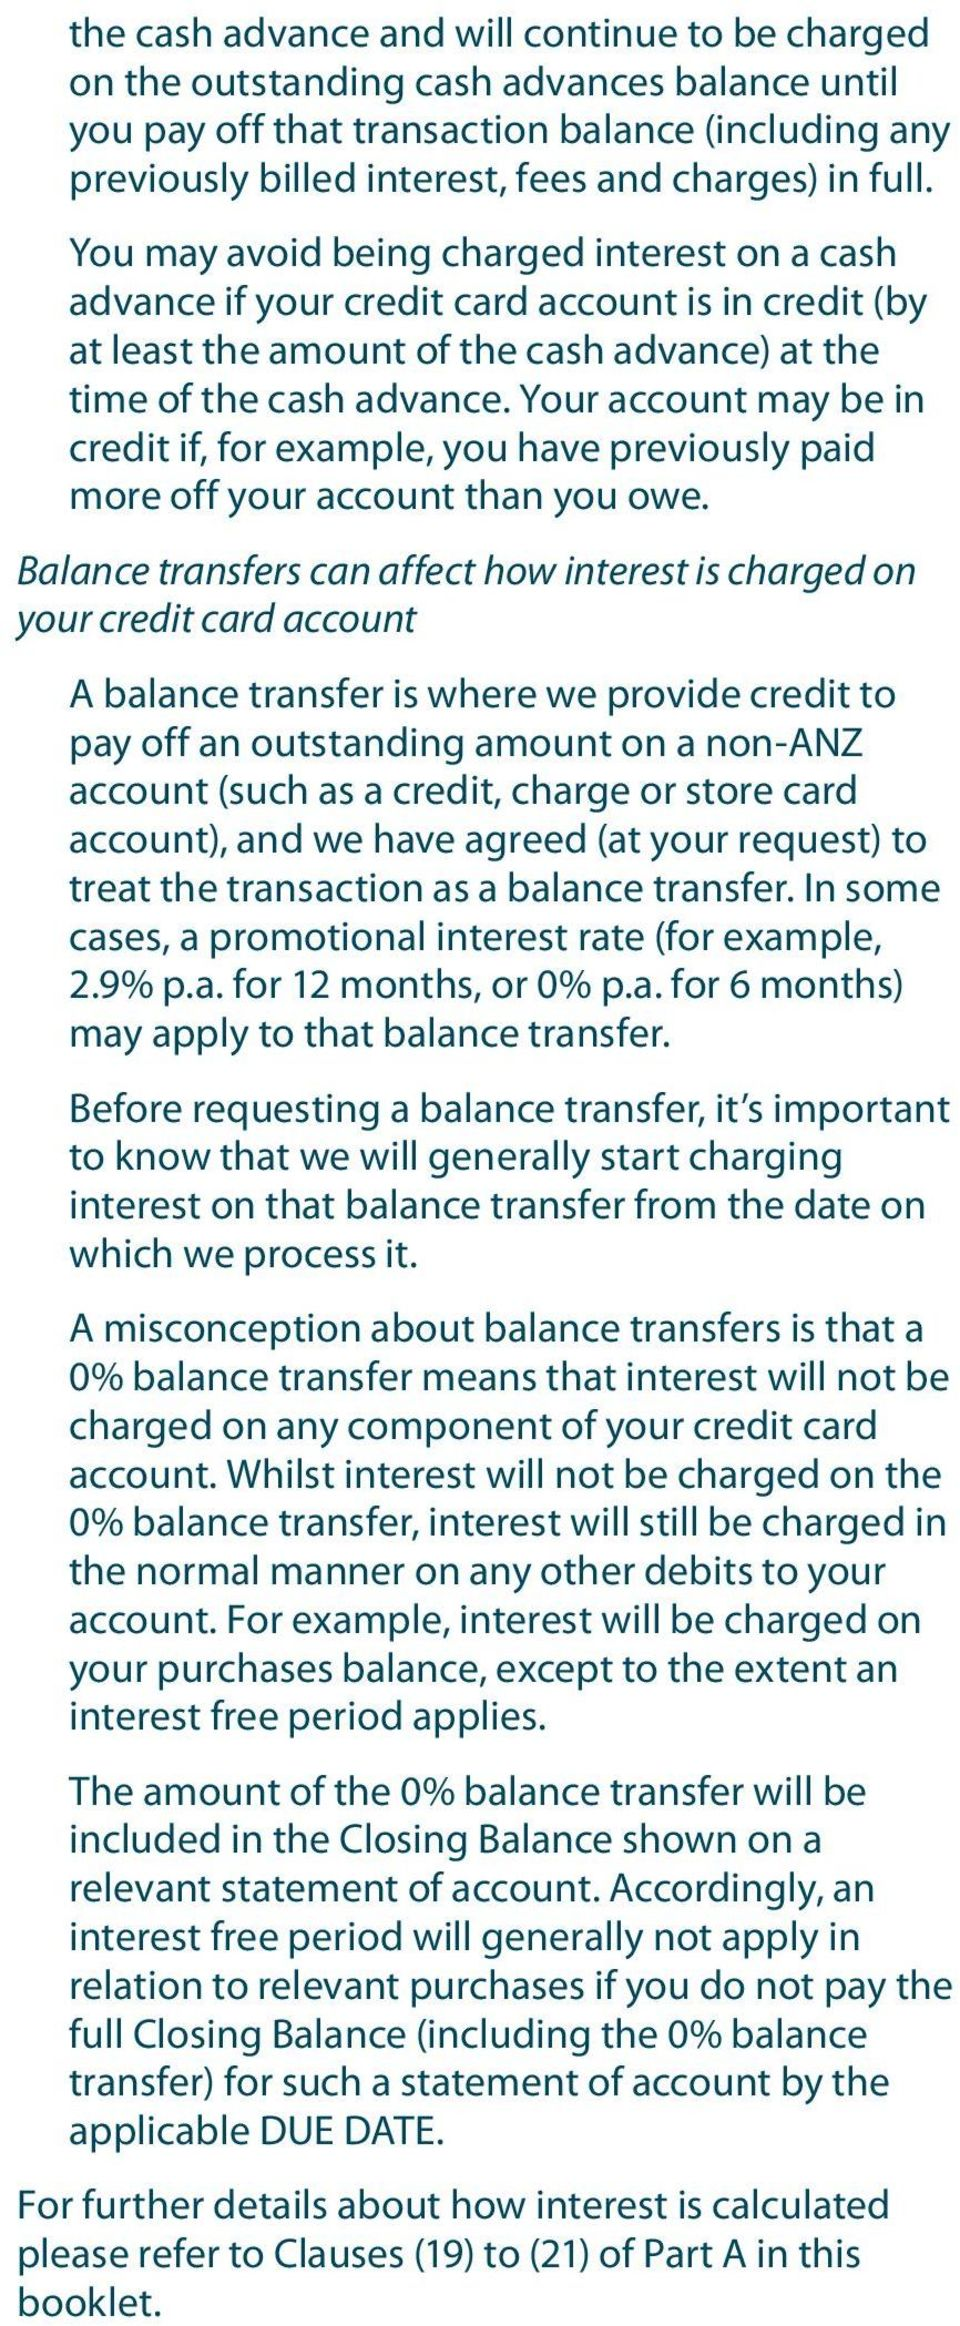 Your account may be in credit if, for example, you have previously paid more off your account than you owe.